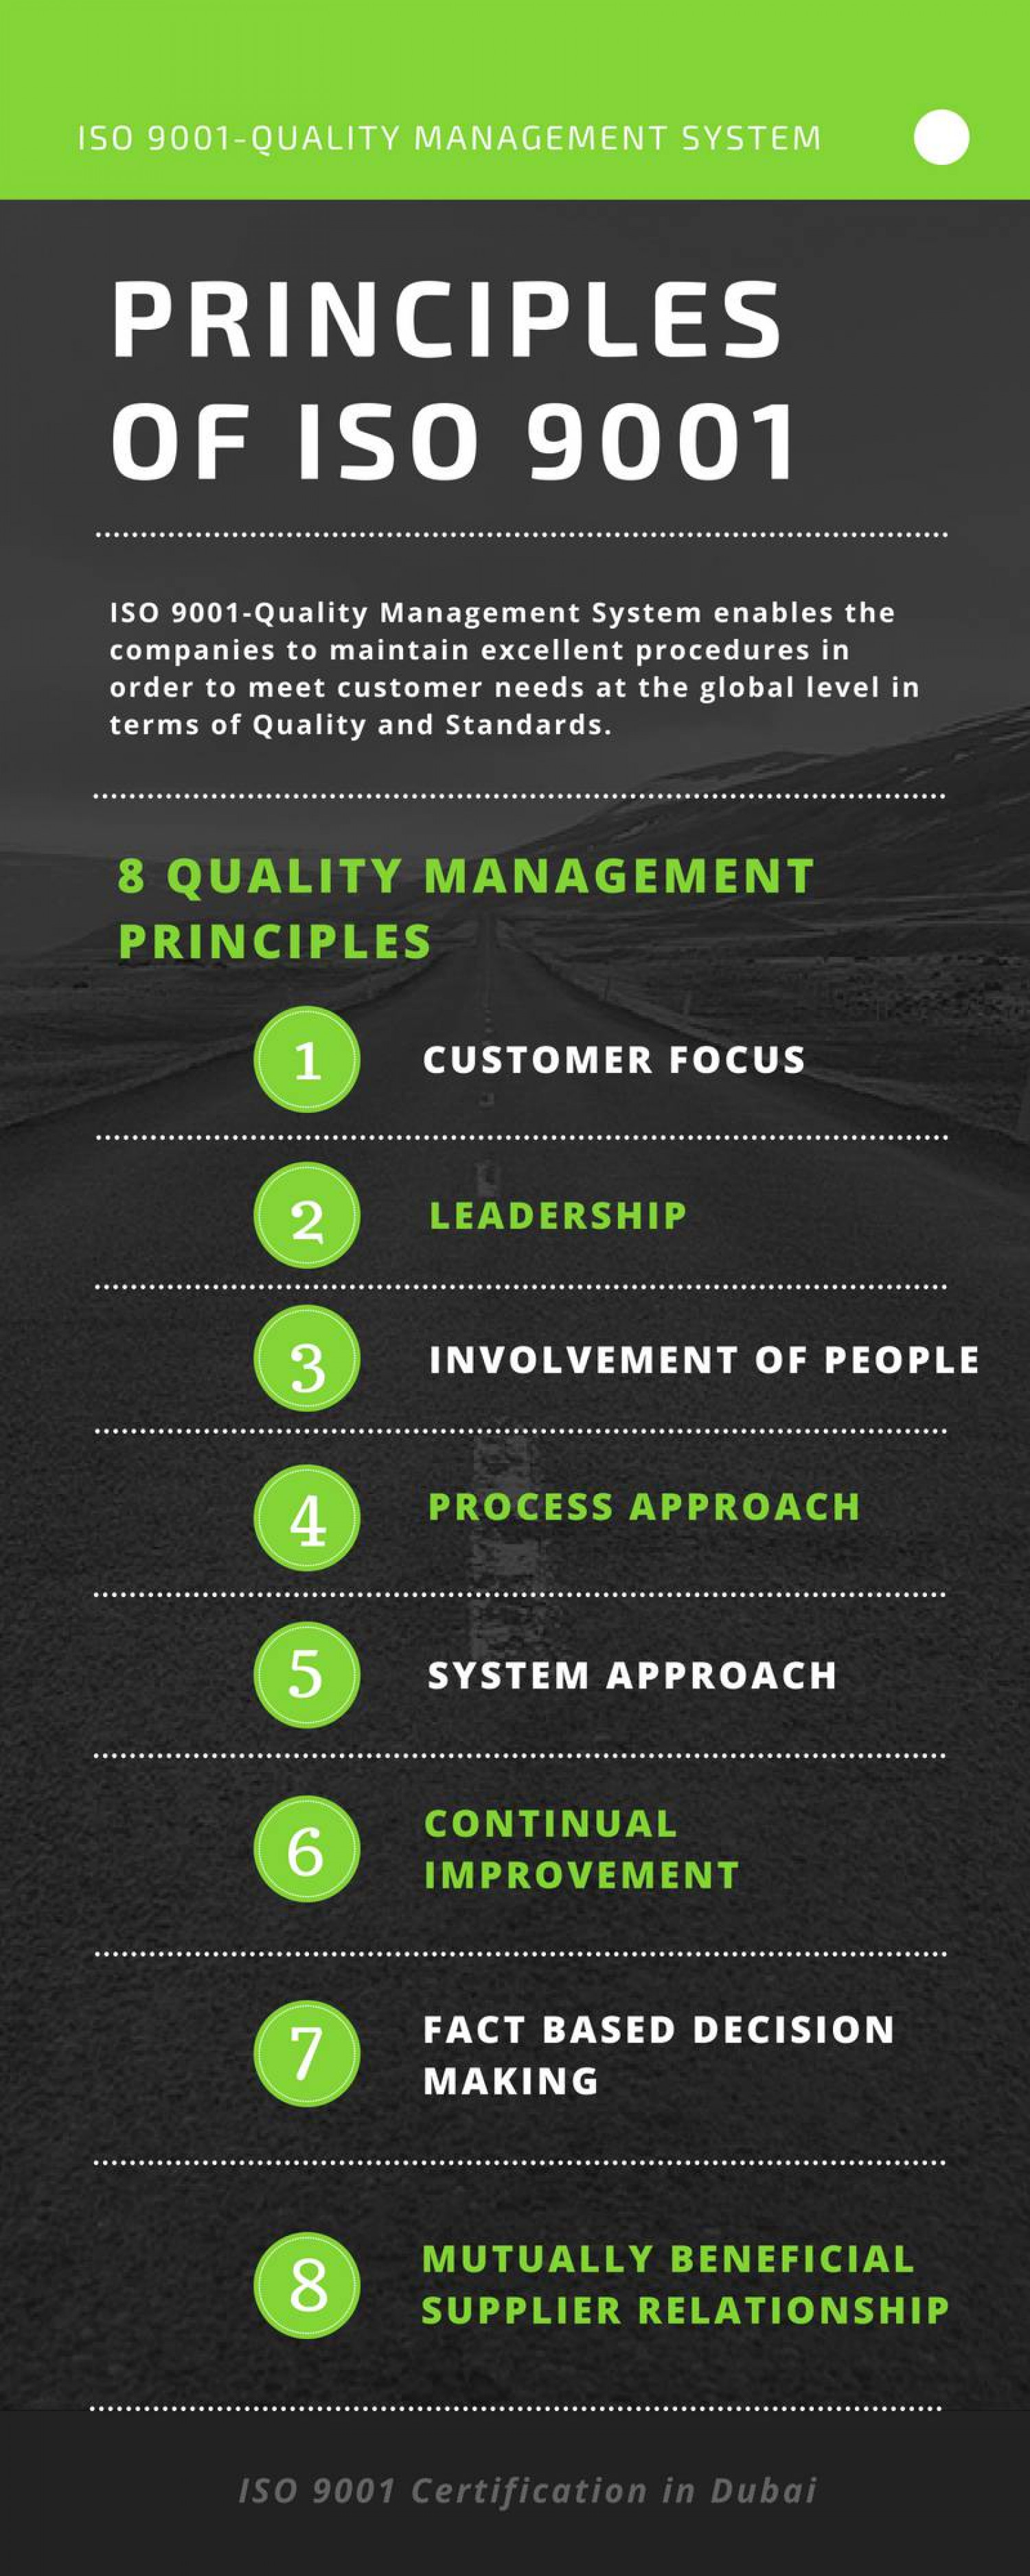 Principles of ISO 9001 Certification Infographic